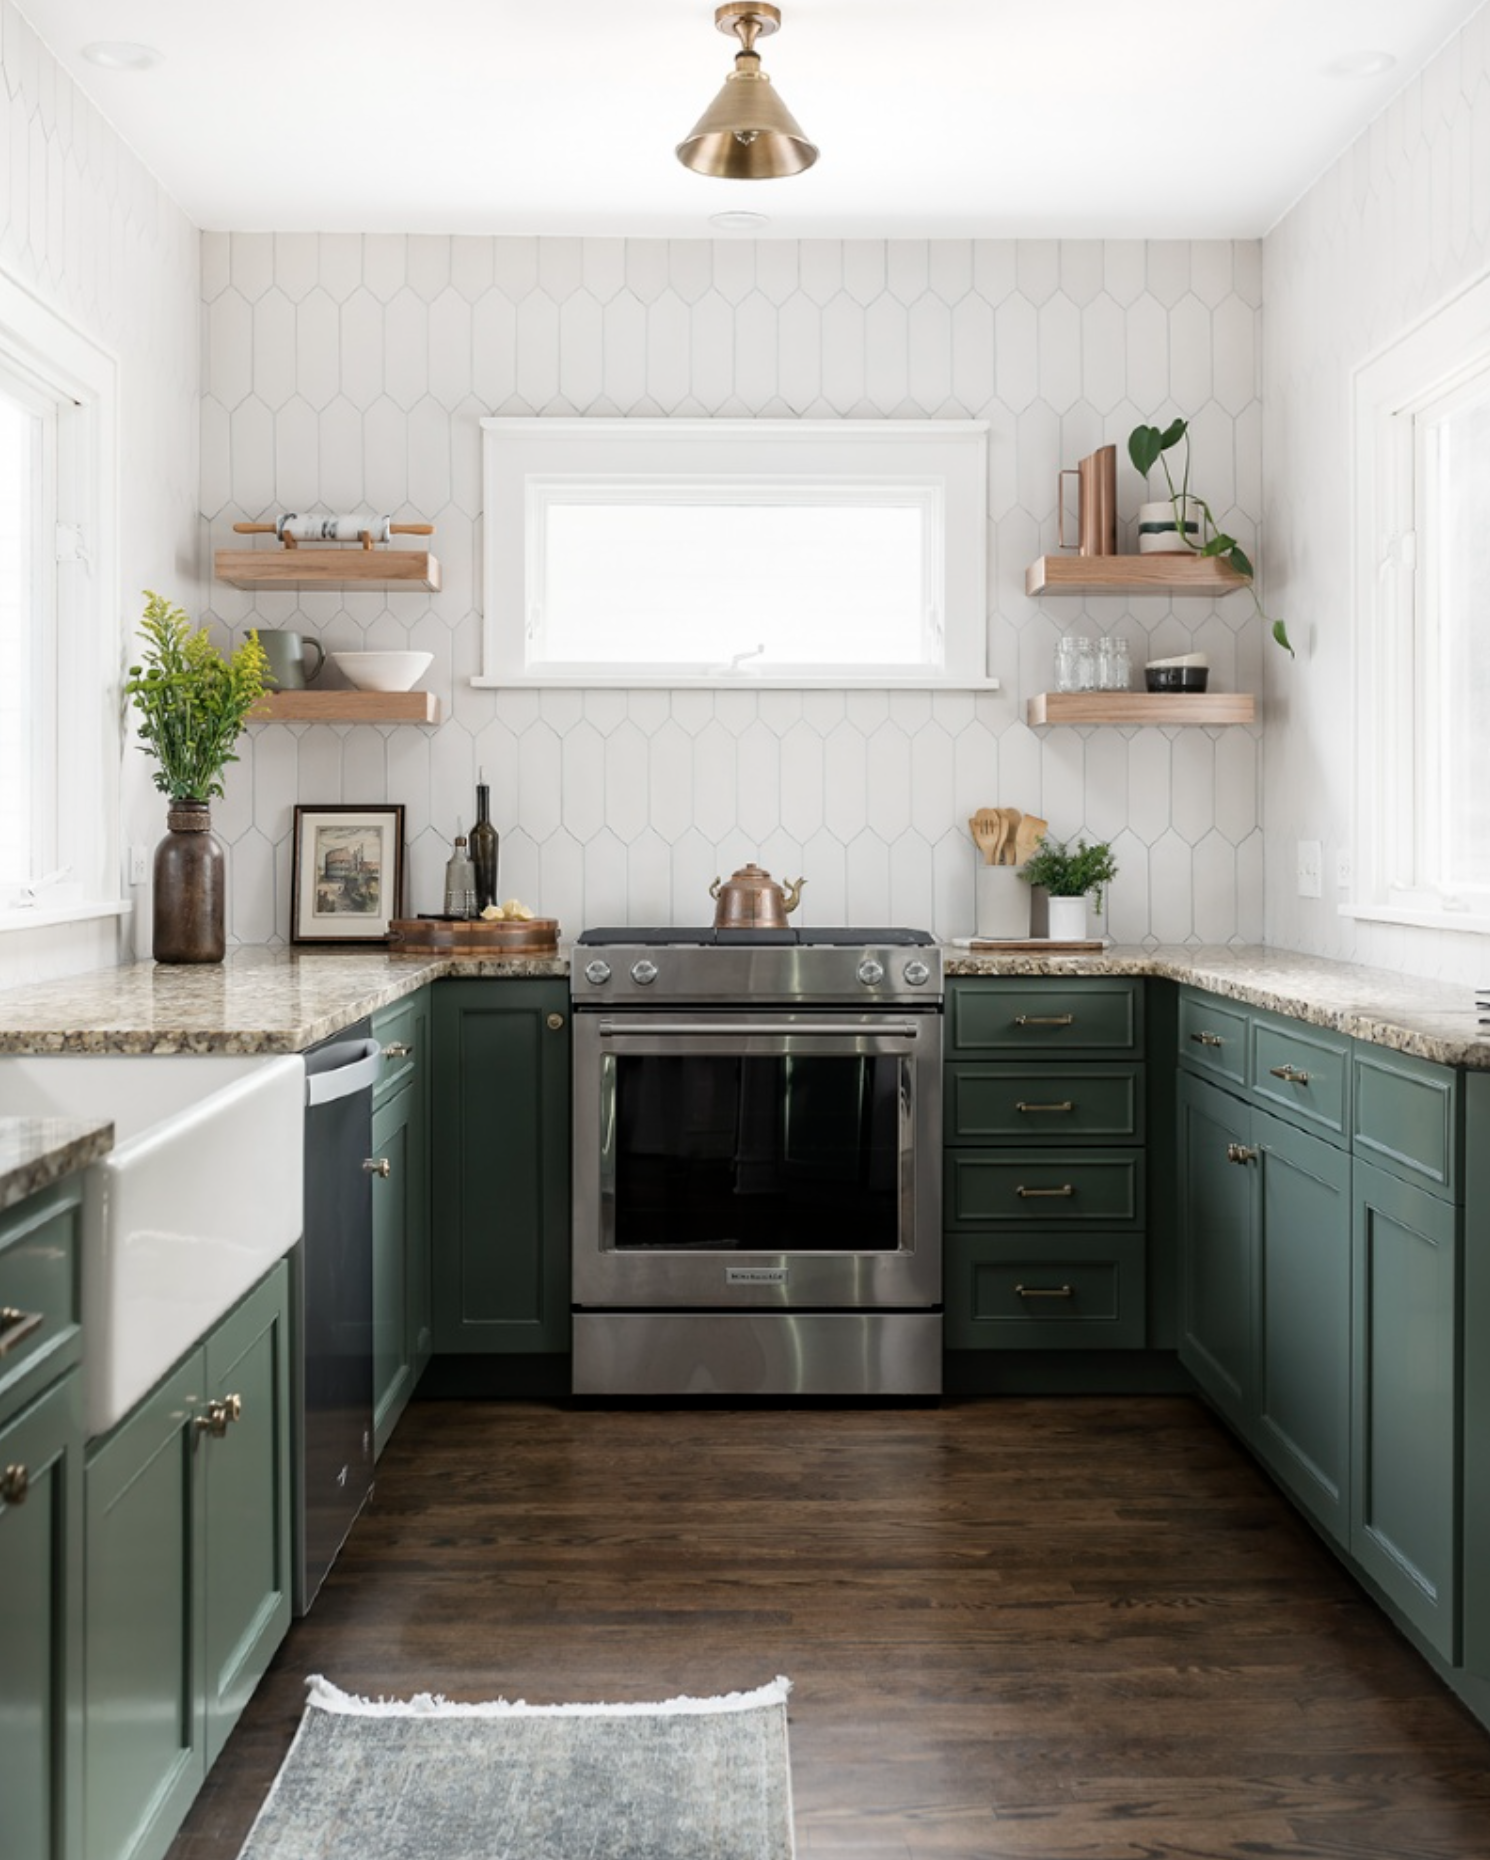 IMAGE: via Chad Esslinger Design feat. paint color 'Cushing Green' from Benjamin Moore